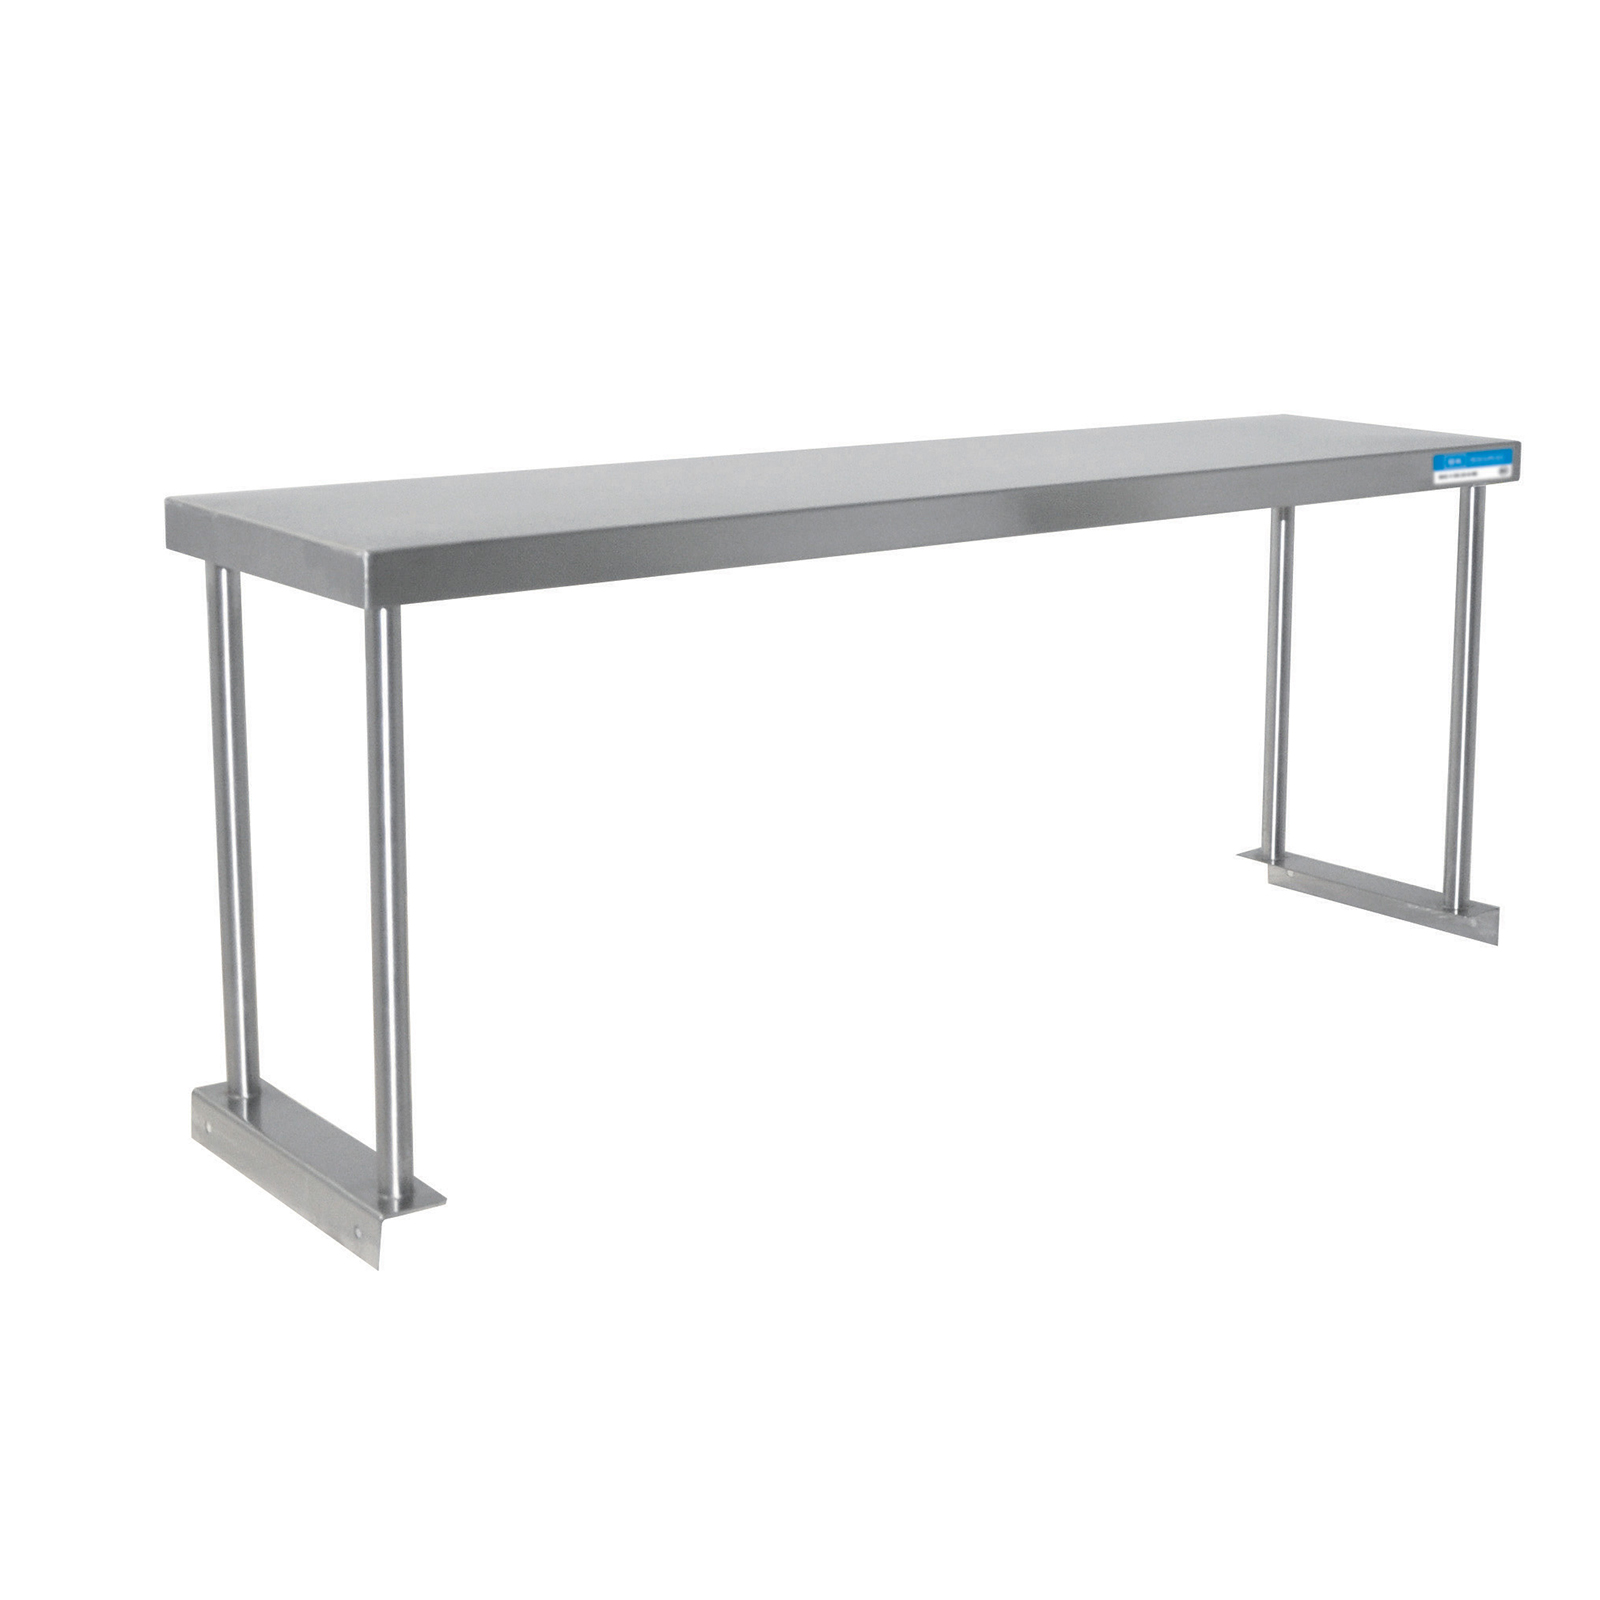 BK Resources BK-OSS-1860 overshelf, table-mounted